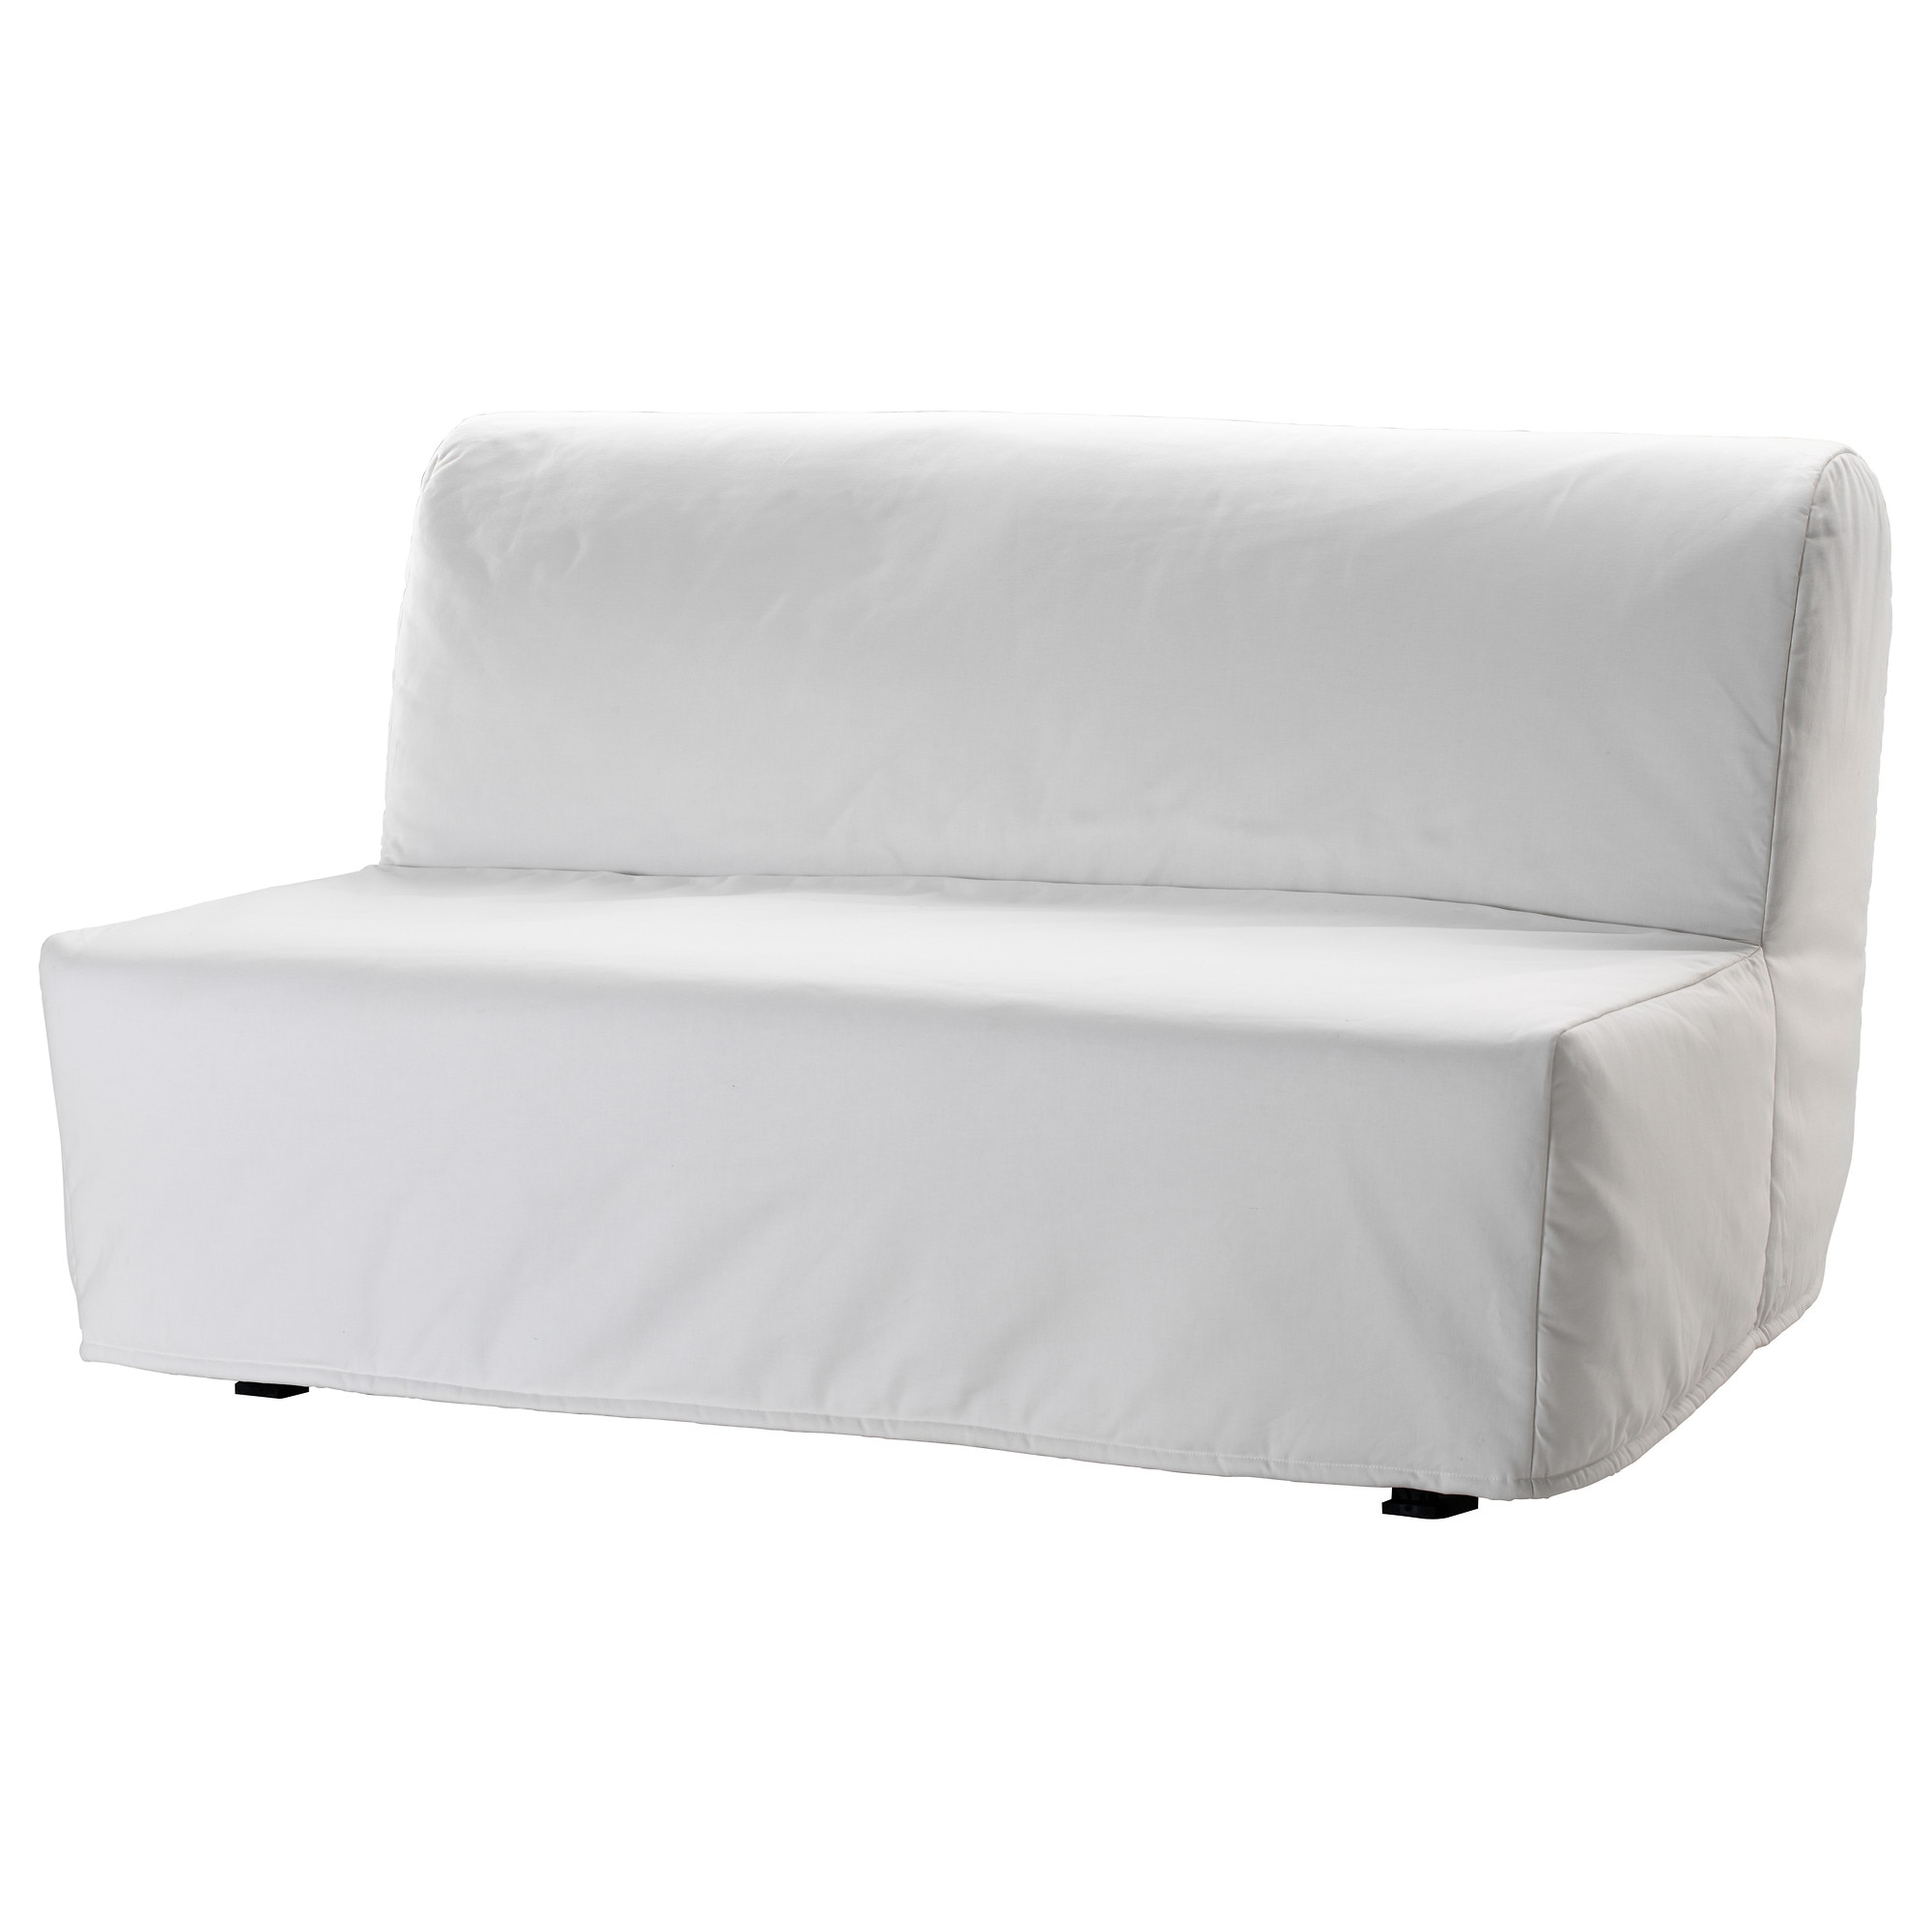 Lycksele Lövås Two Seat Sofa Bed Ransta White Ikea